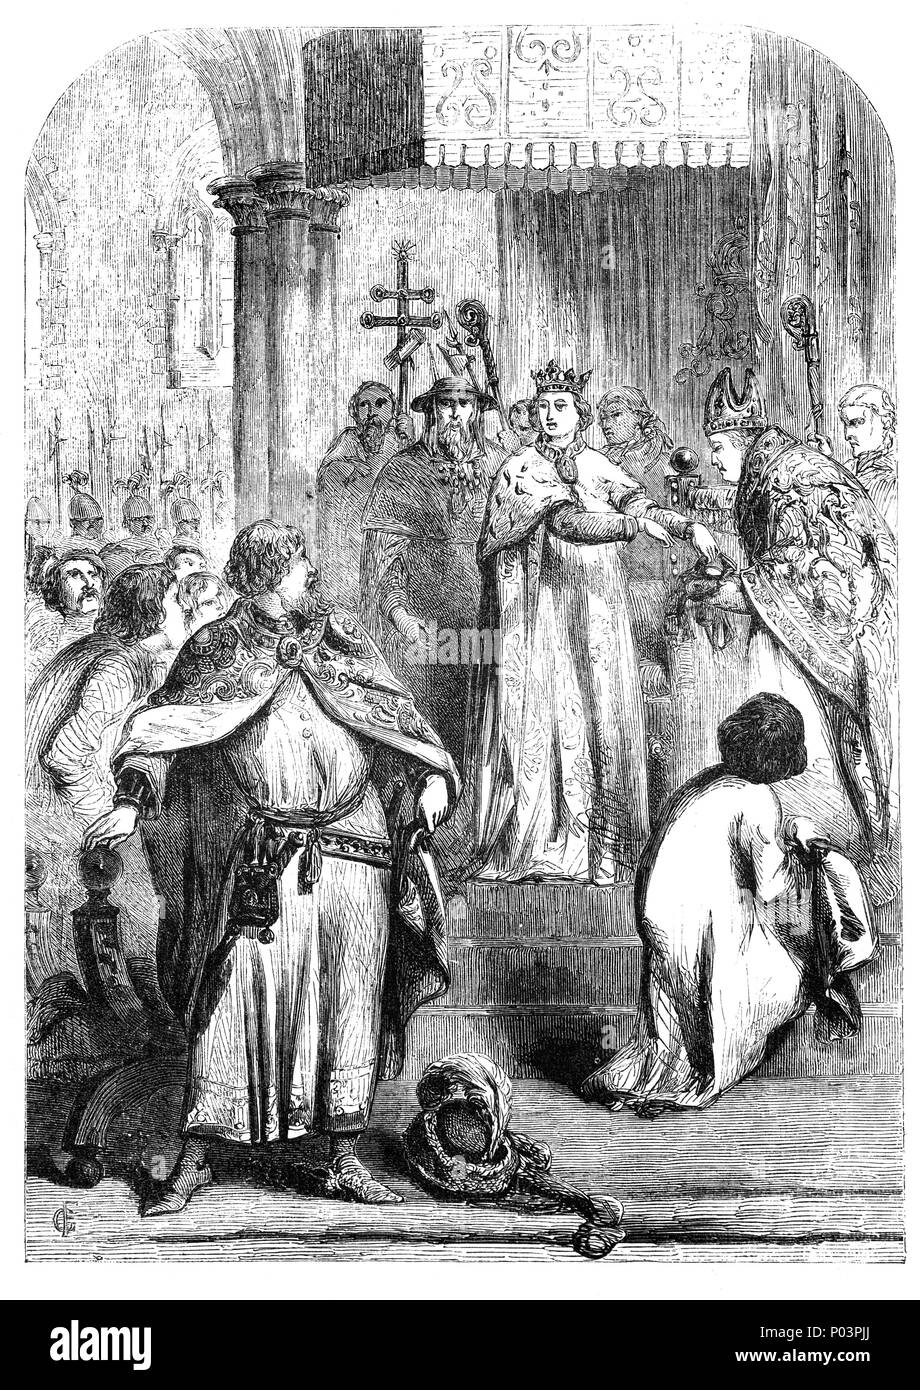 Richard II (1367-1400), King of England over twenty-one years old claimind the right to govern in his own name, and taking control of the government on 3 May 1389. The period was preceded for a time in which Richard's power was revoked and the kingdom placed under the regency of the Lords Appellant.  John of Gaunt returned to England in the same year and settled his differences with the king, after which the old statesman acted as a moderating influence on English politics. - Stock Image